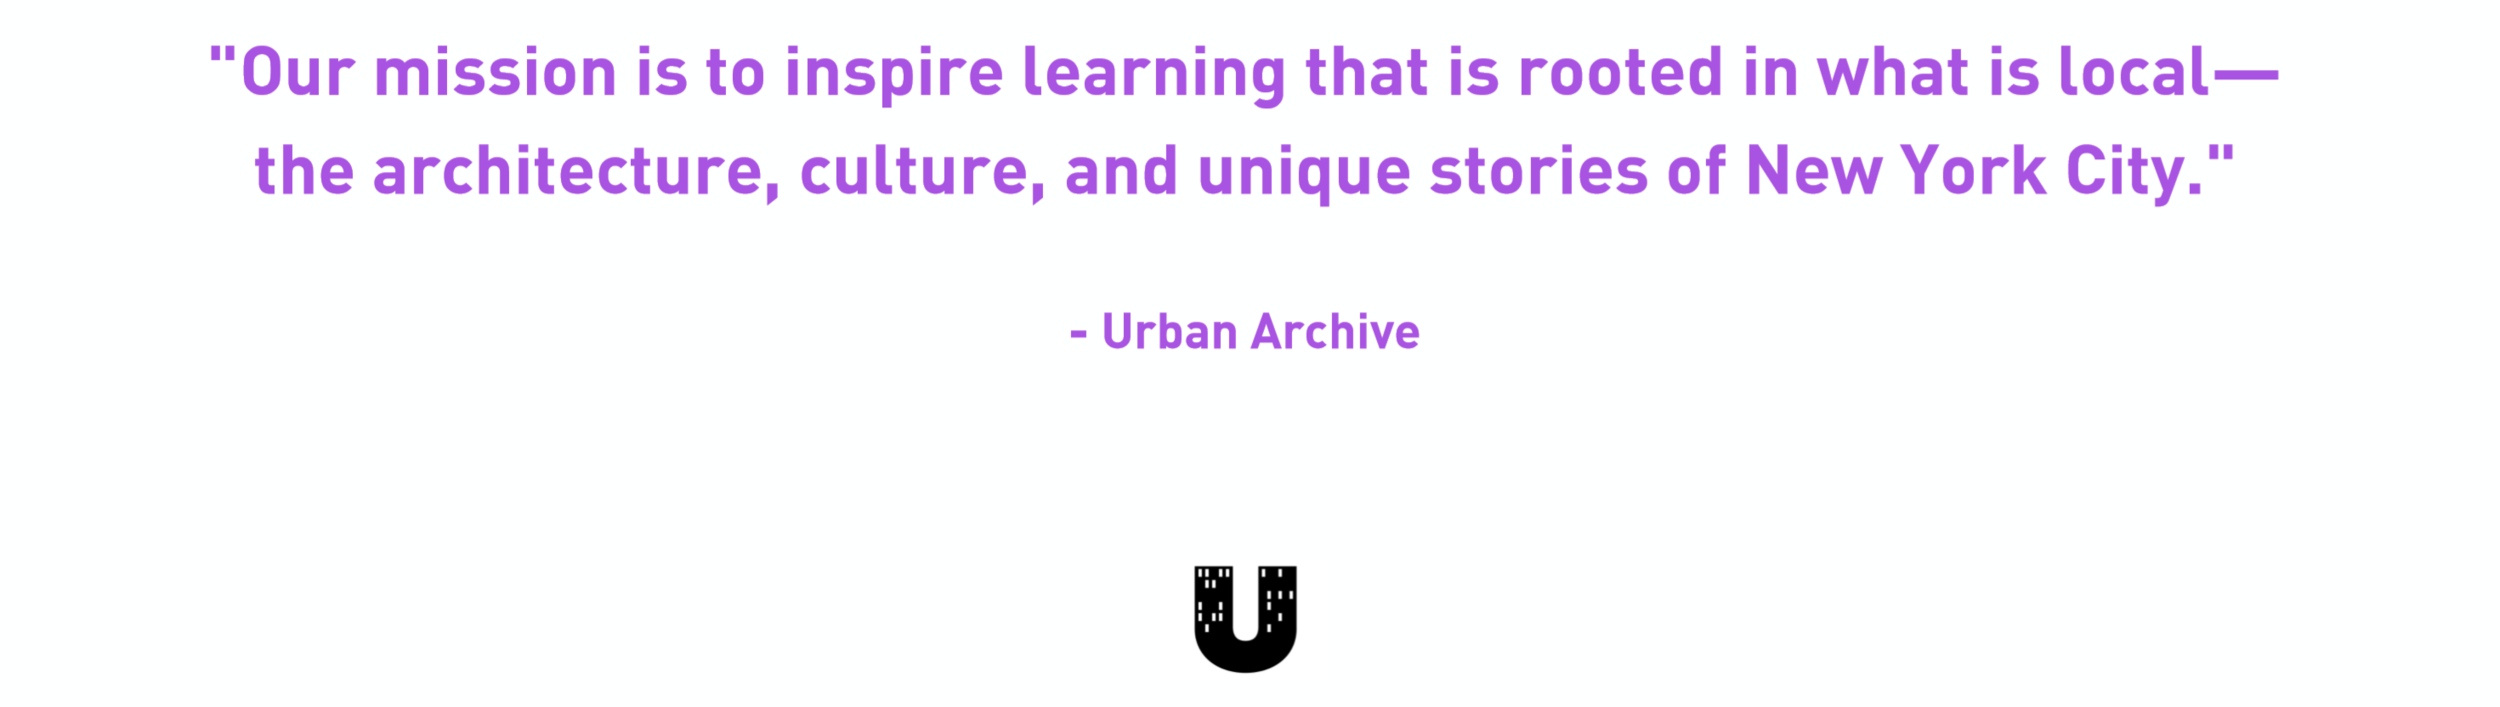 urban archive overview.png